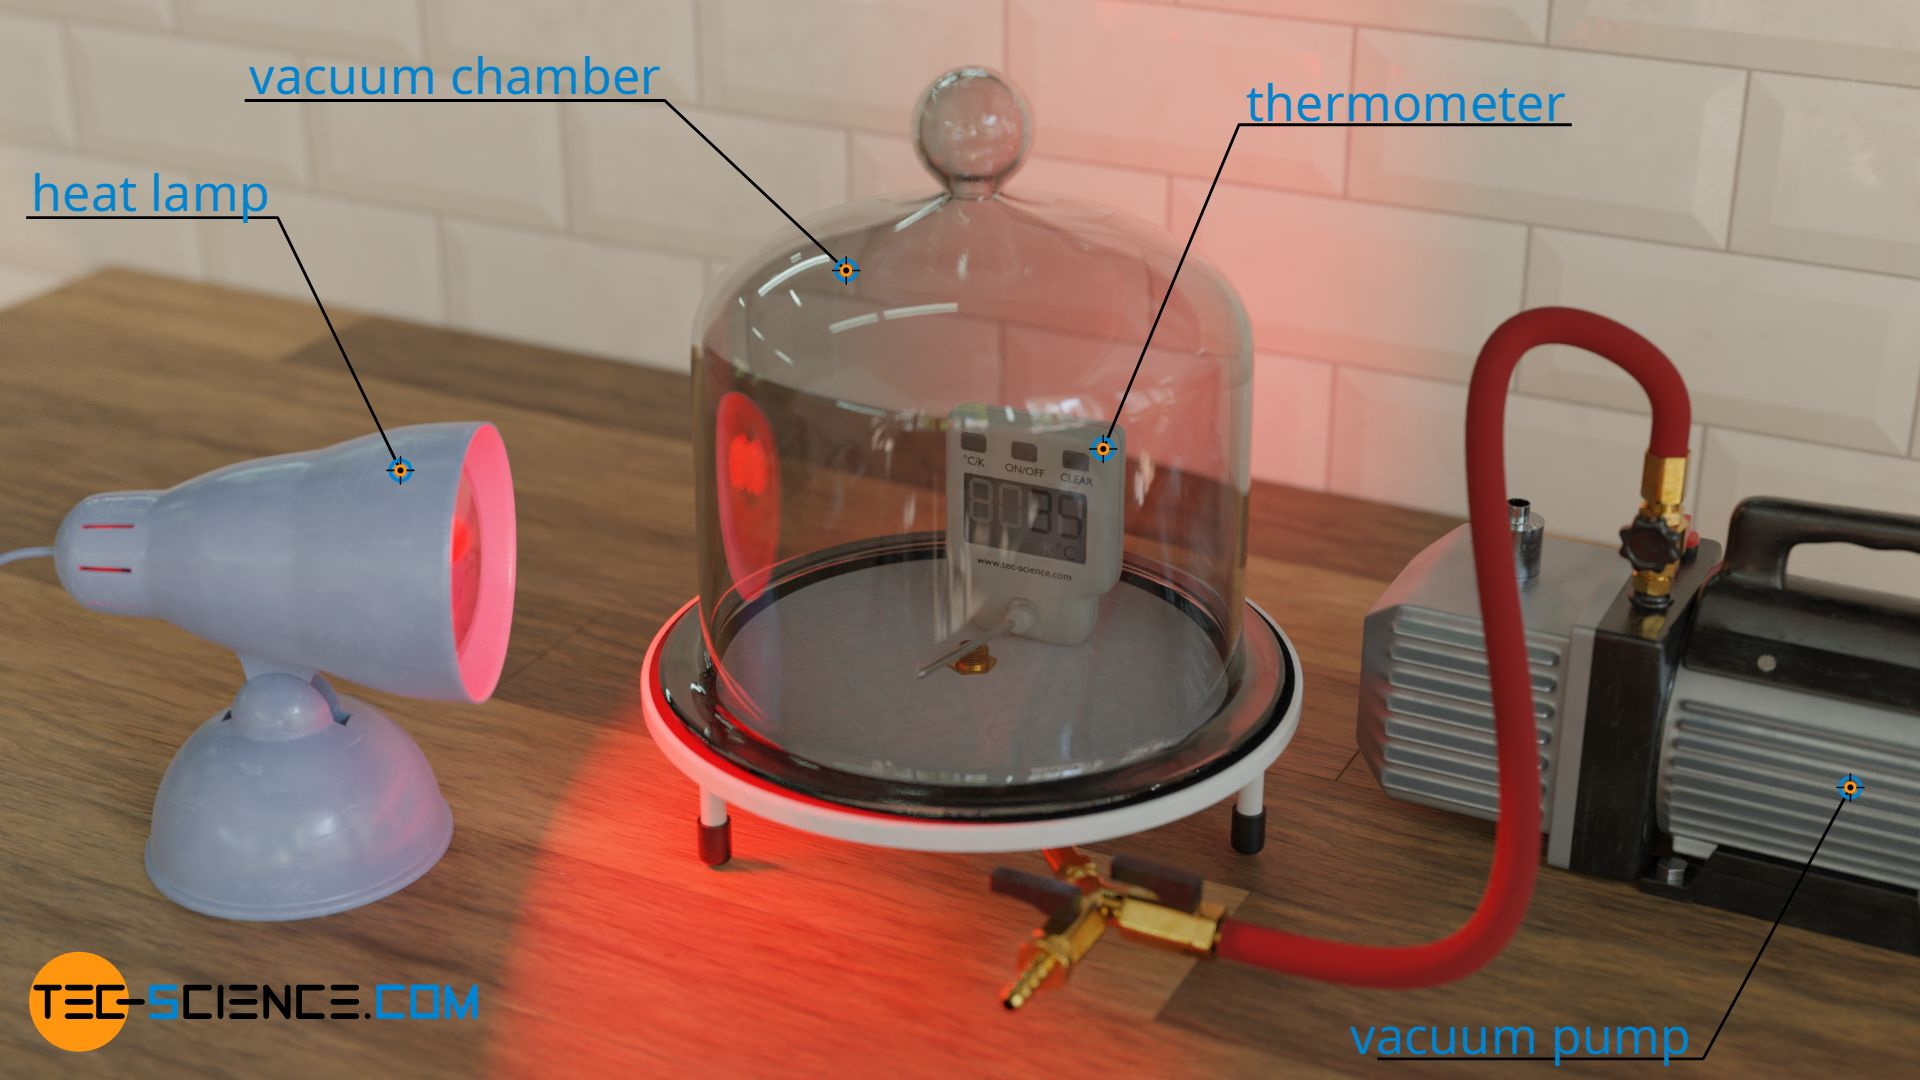 Experiment to demonstrate heat transfer by thermal radiation